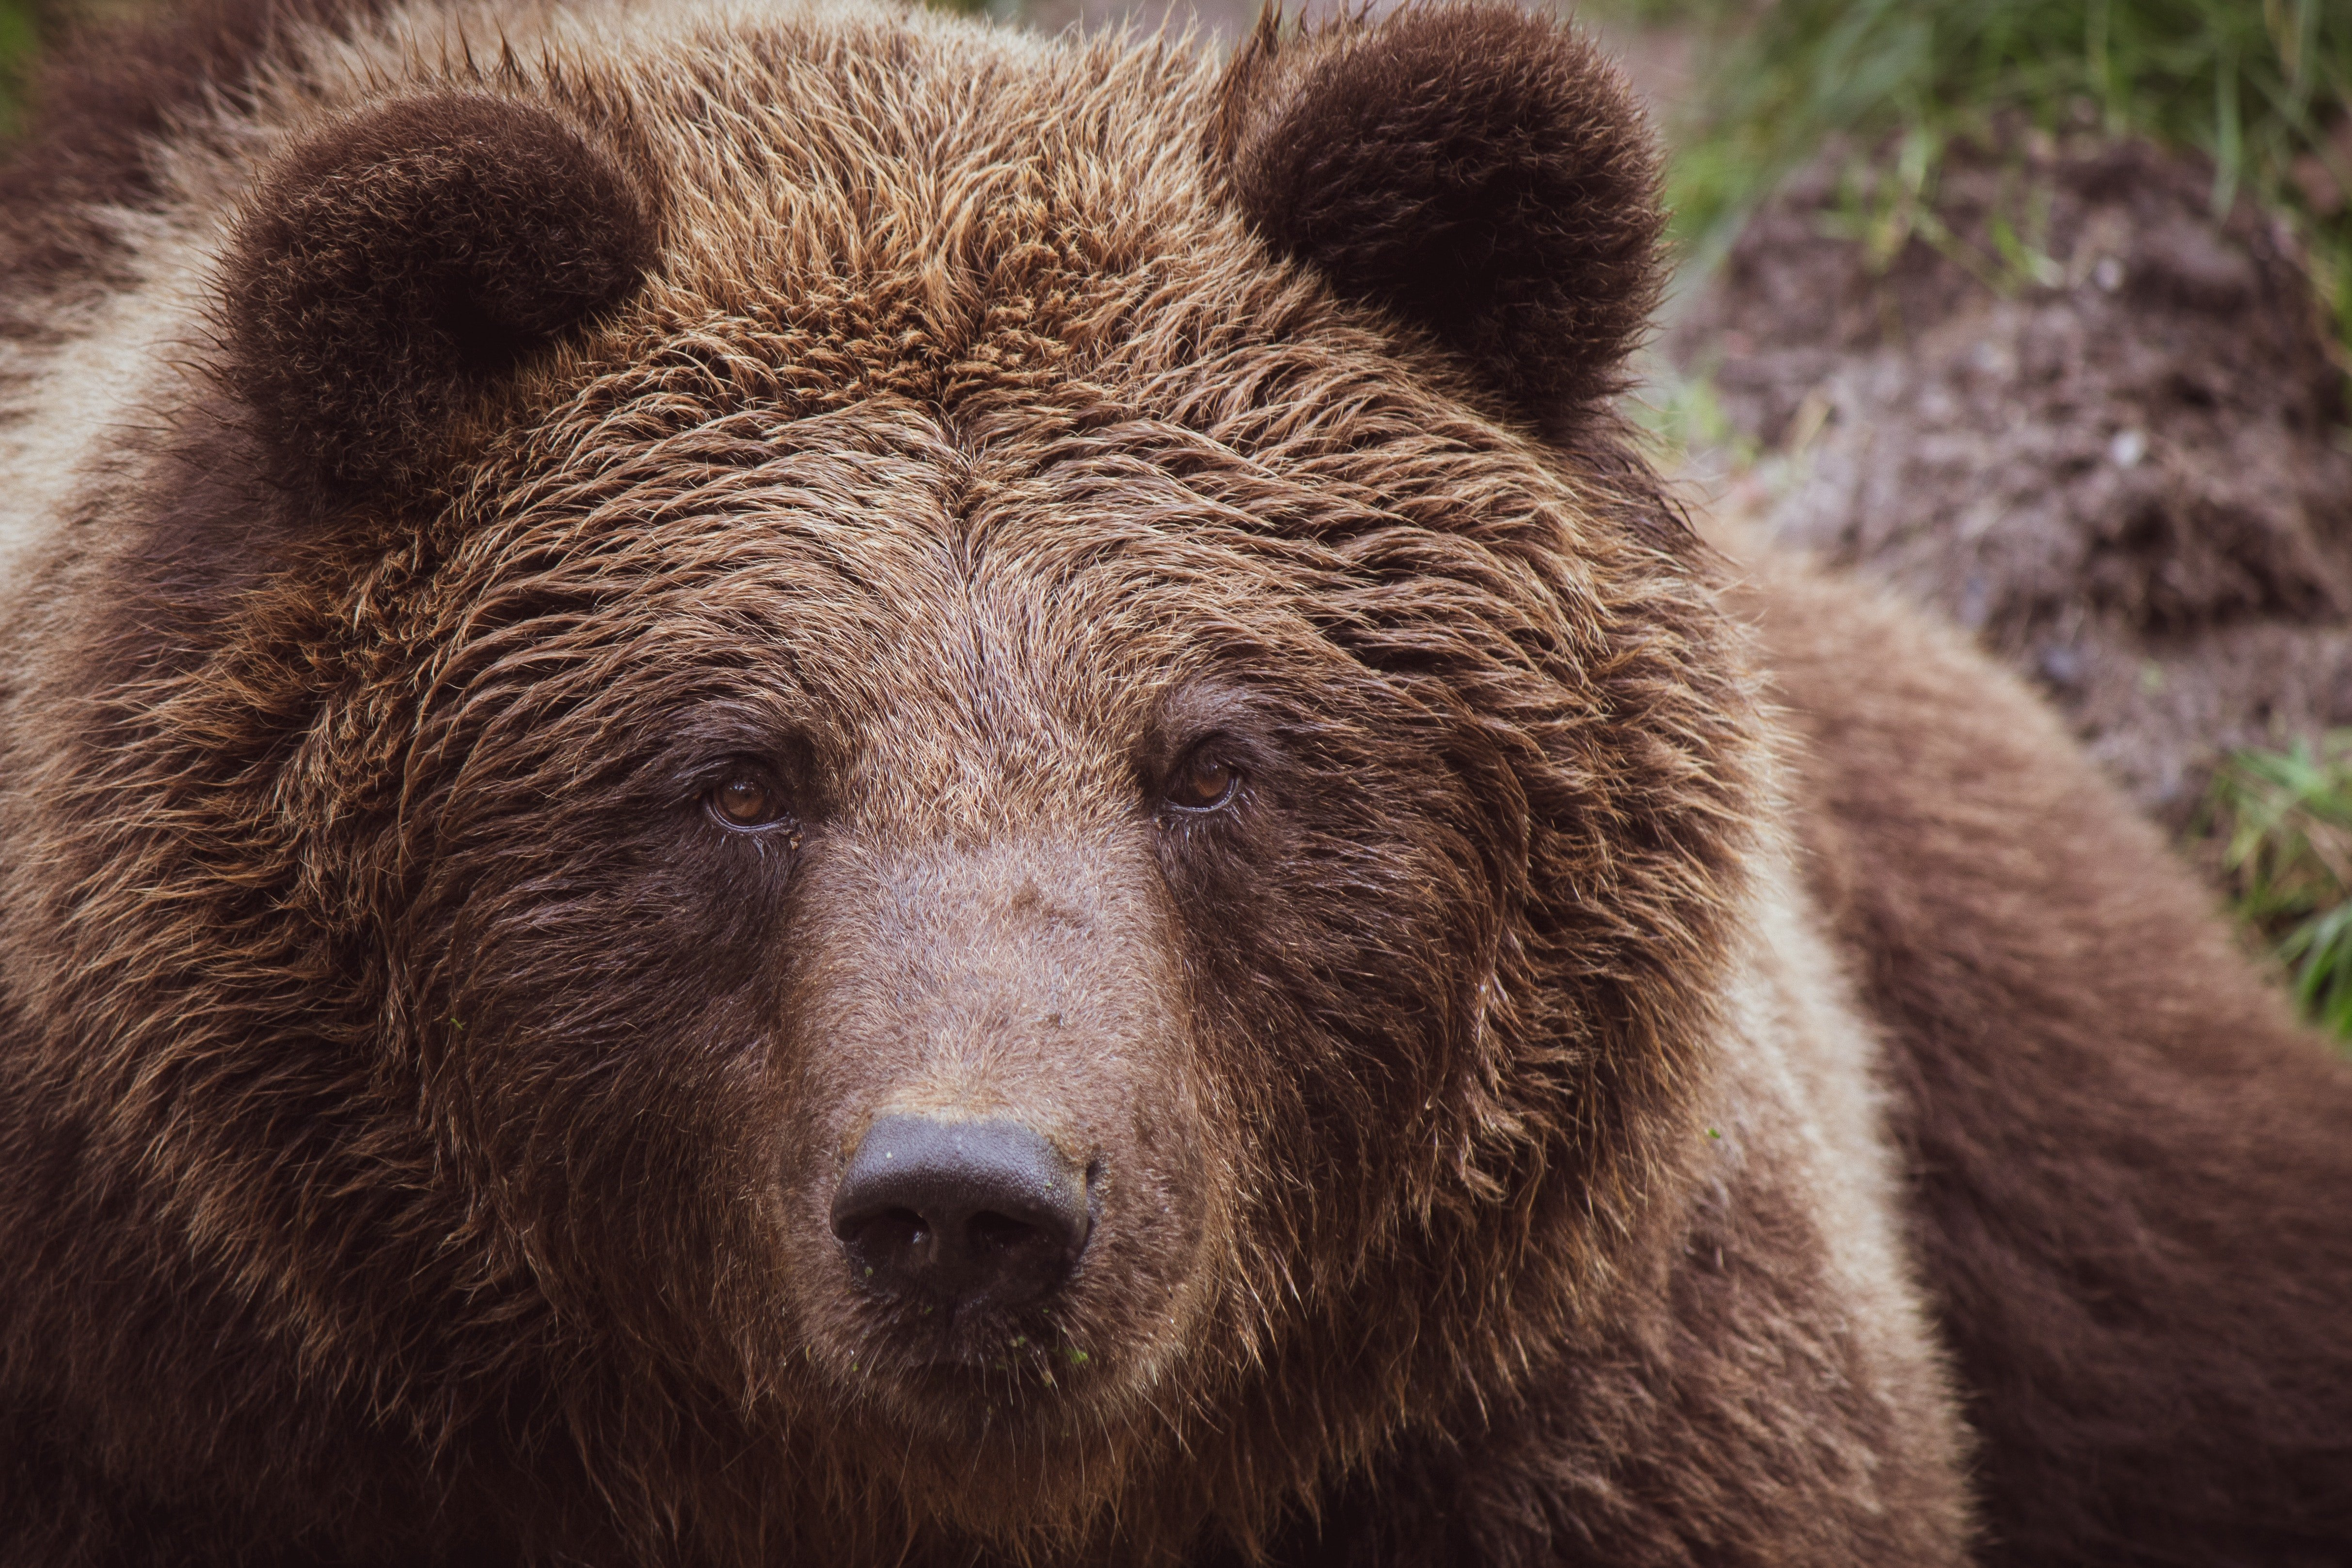 The baby bear asked his mom if he was part grizzly bear. | Photo: Pexels